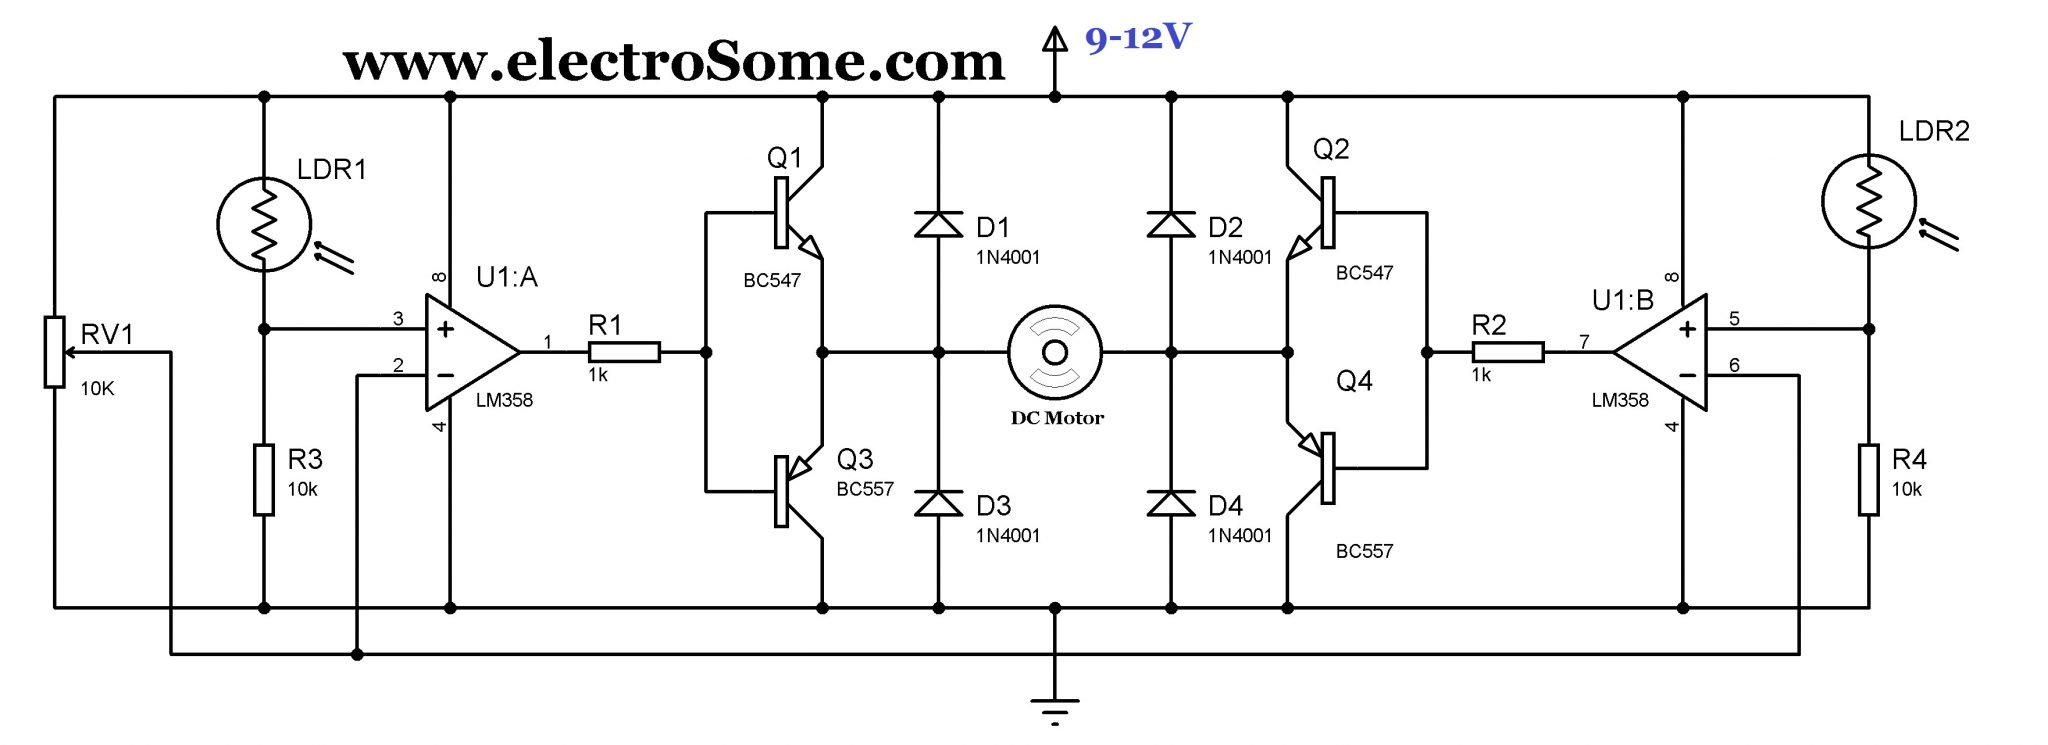 Simple Solar Tracker Circuit Using Lm358 Schematic Diagram Of 5v Dc Regulated Phone Charger